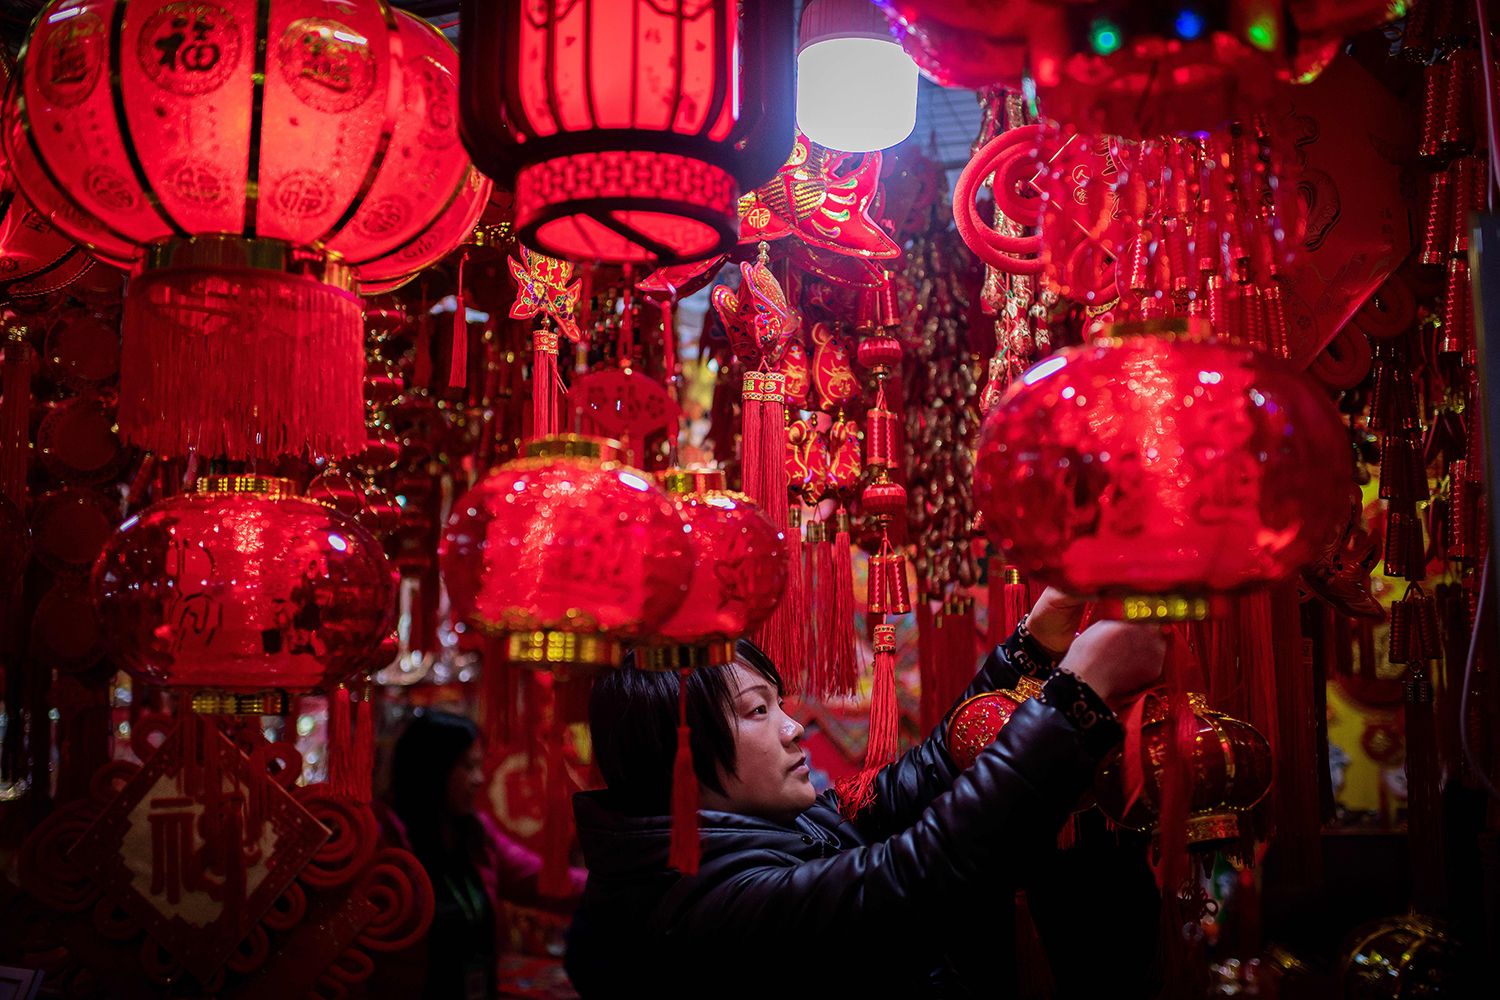 A vendor adjusts lanterns at her stall at a market in Beijing on Jan. 15 ahead of the Lunar New Year of the Rat. NICOLAS ASFOURI/AFP via Getty Images